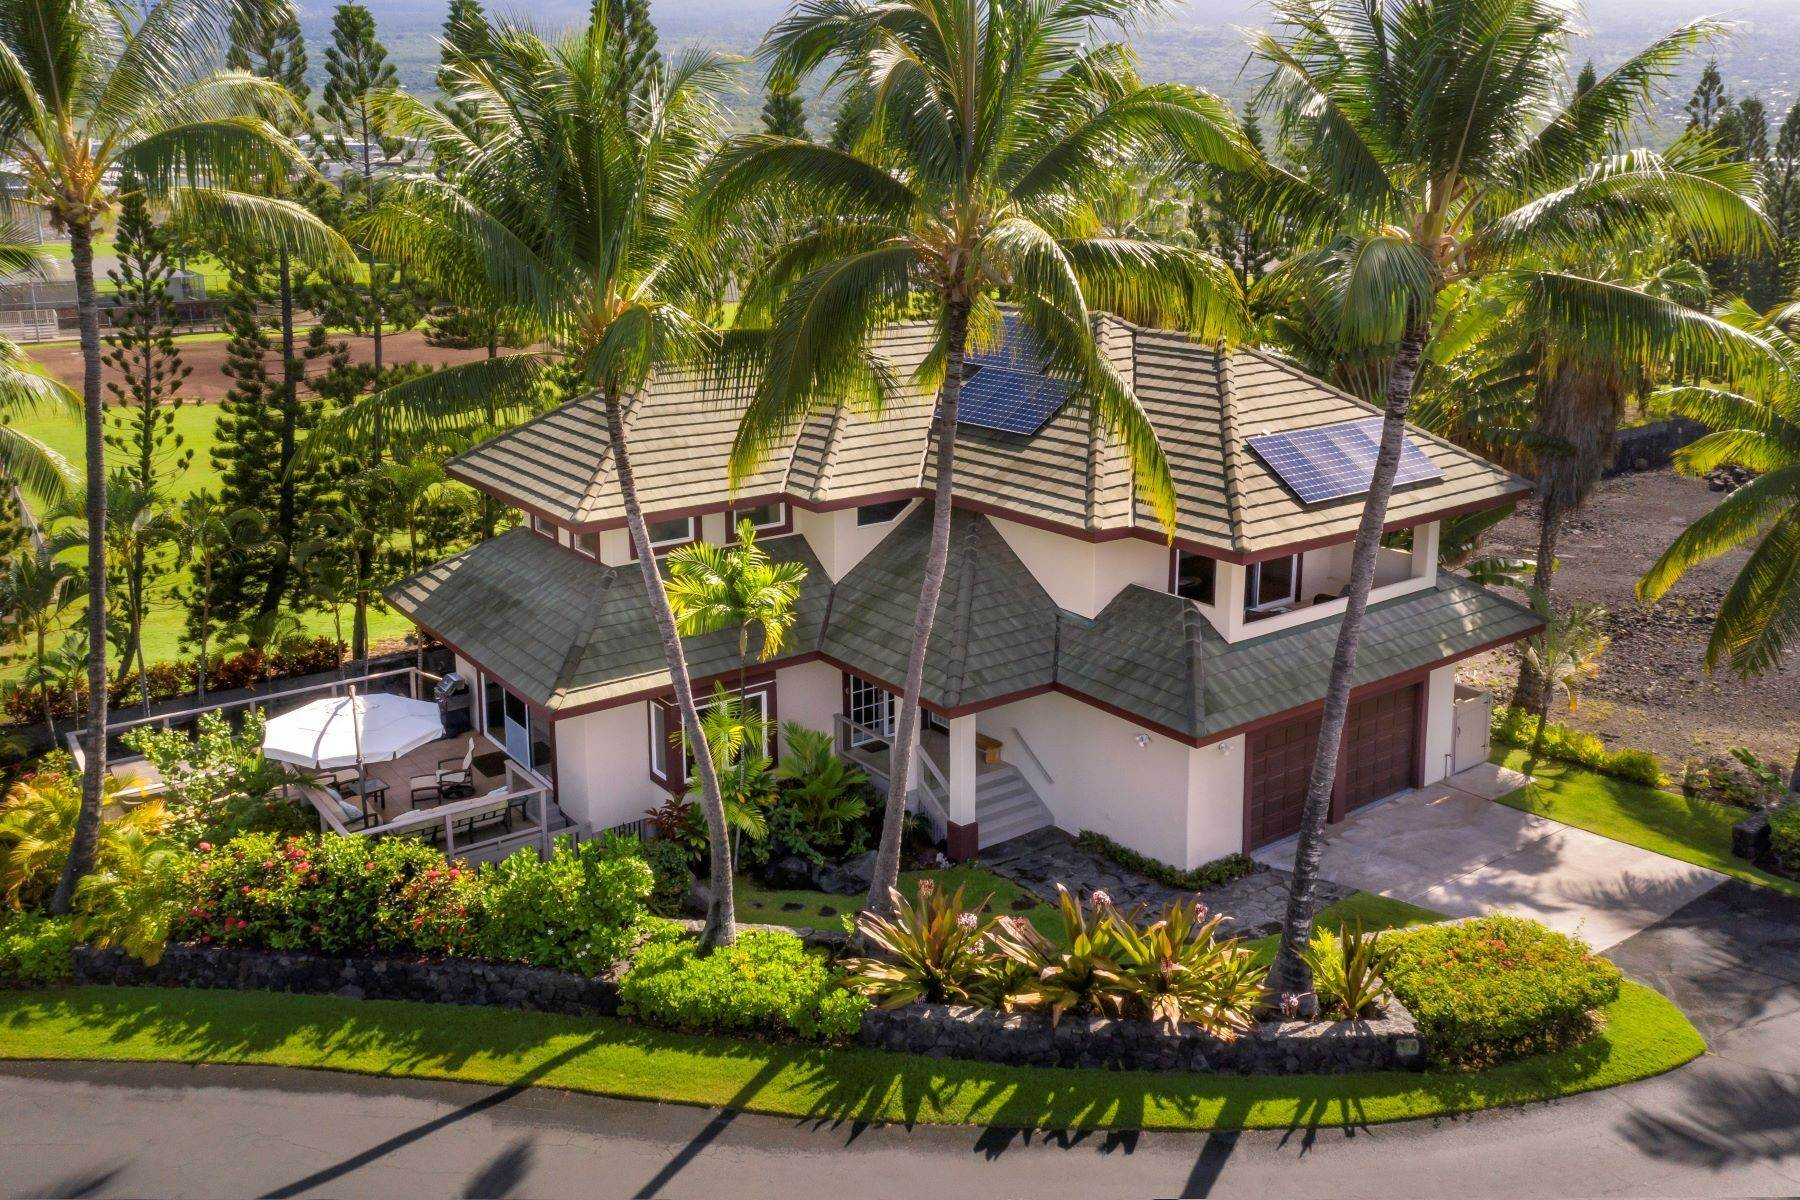 Single Family Homes for Sale at 75-5471 Kona Bay Drive, Kailua-Kona, HI 96740 75-5471 Kona Bay Drive Kailua-Kona, Hawaii 96740 United States